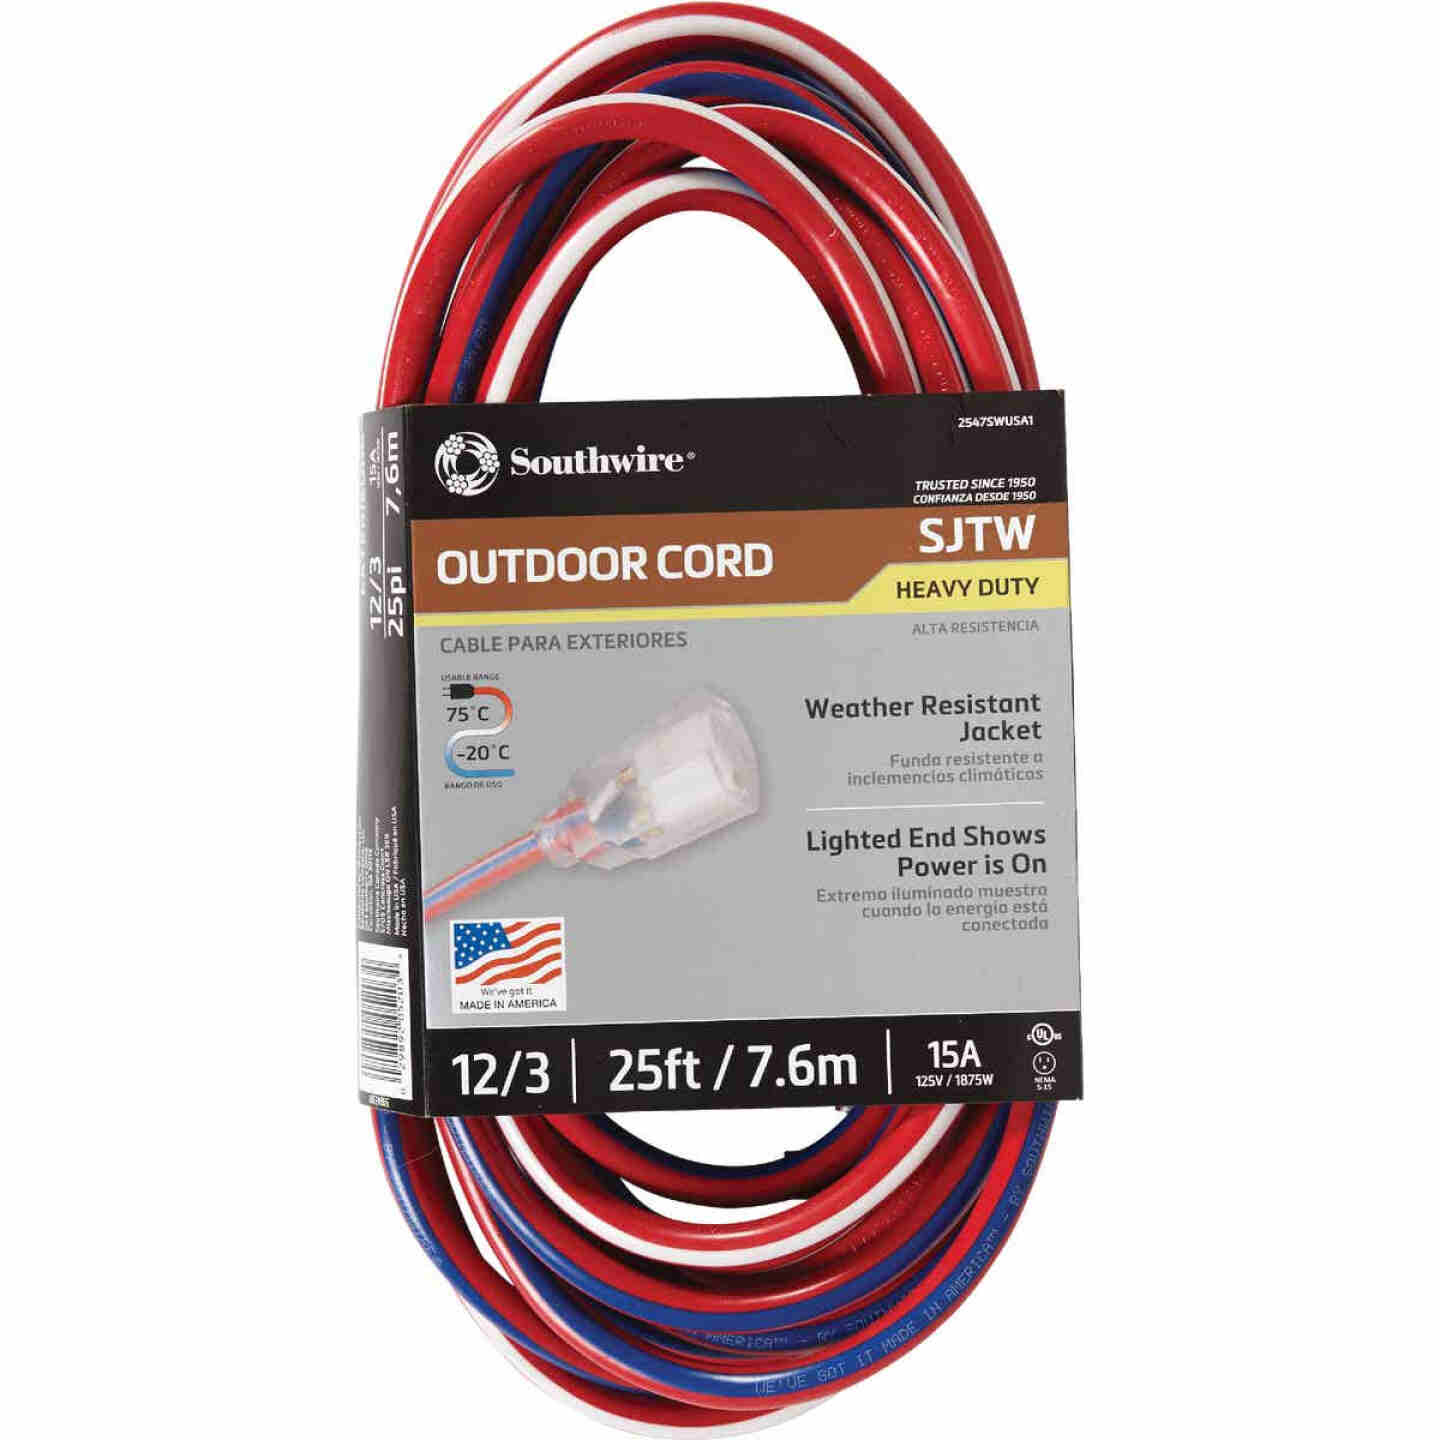 Southwire 25 Ft. 12/3 Indoor/Outdoor Red, White, & Blue Striped Patriotic Extension Cord Image 1